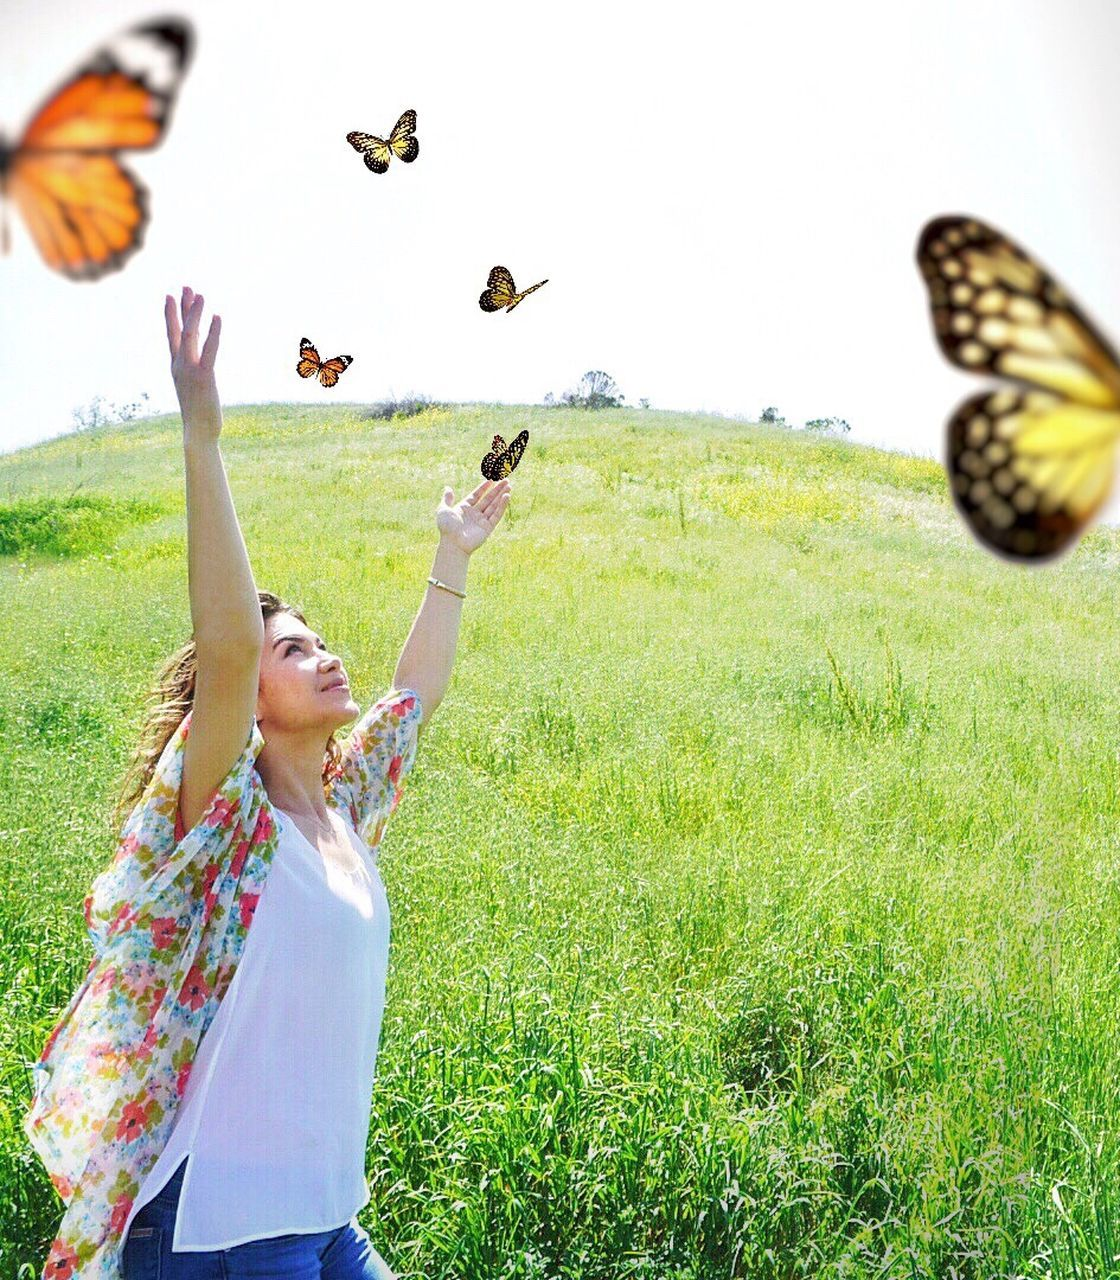 animal themes, bird, leisure activity, grass, nature, flying, arms raised, day, field, motion, outdoors, animal wildlife, animals in the wild, real people, one person, young adult, fun, one animal, mid-air, young women, standing, happiness, lifestyles, smiling, clear sky, beauty in nature, sky, people